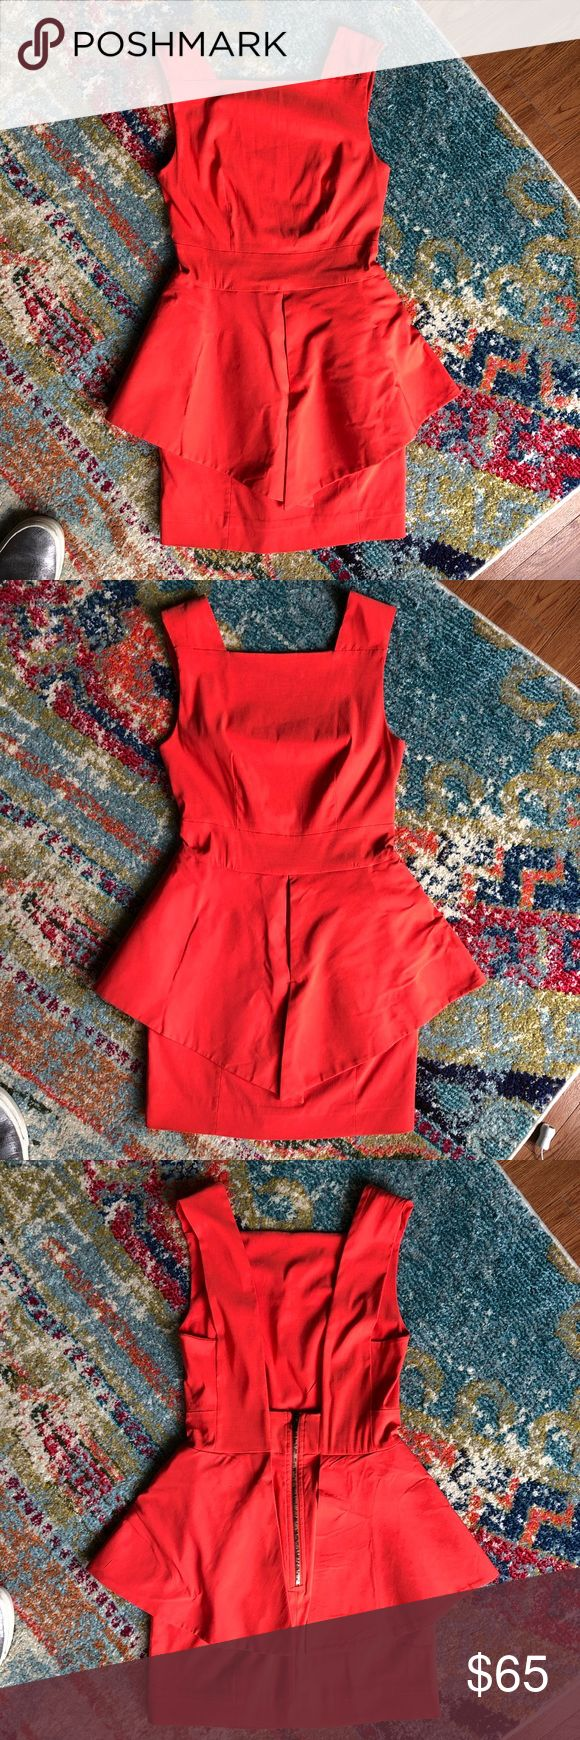 NWT poppy structured cocktail dress NWT gorgeous structured dress with angular peplum & exposes back zipper in vibrant poppy color (orangey red). Size Small. Fits size 2-6. Dry clean Dresses Mini